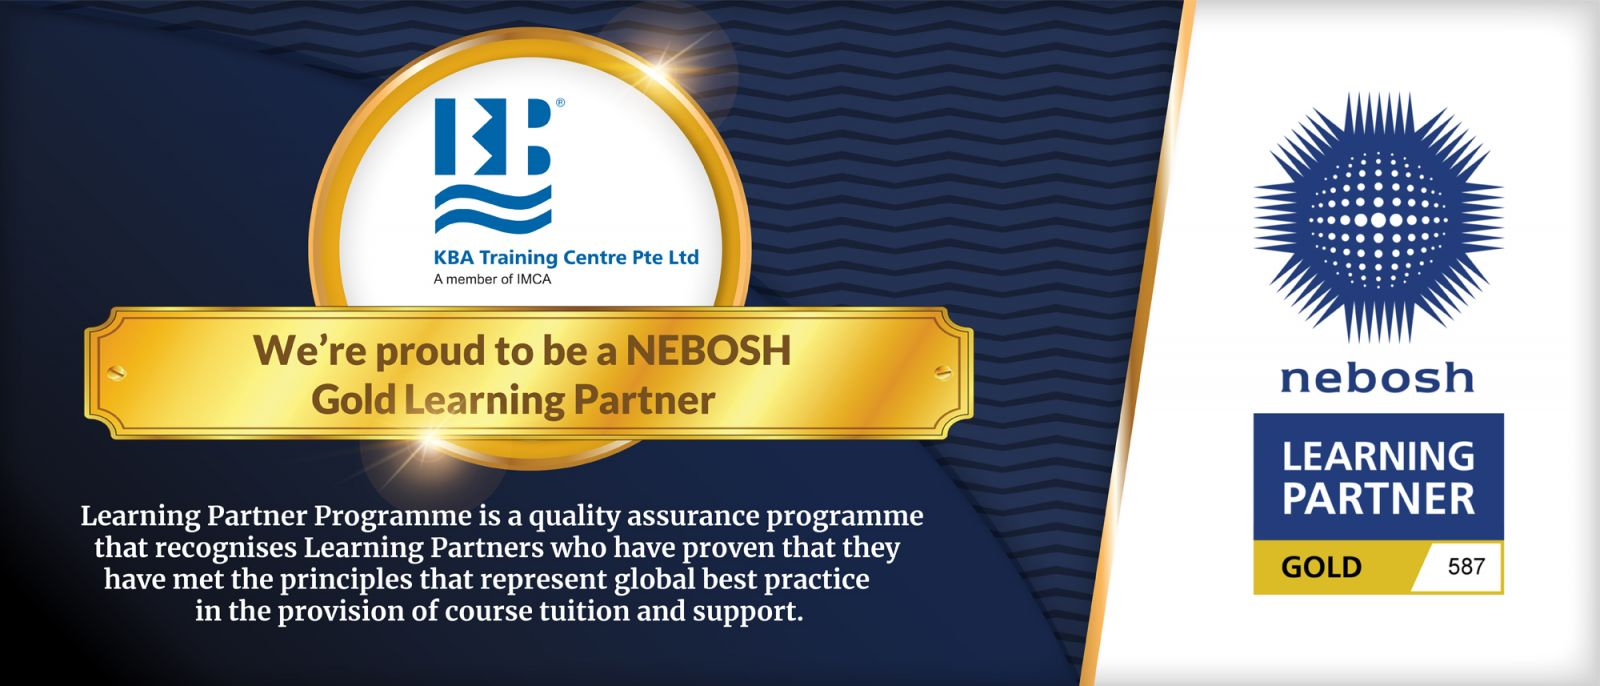 KBA Training Centre - NEBOSH Gold Learning Partner